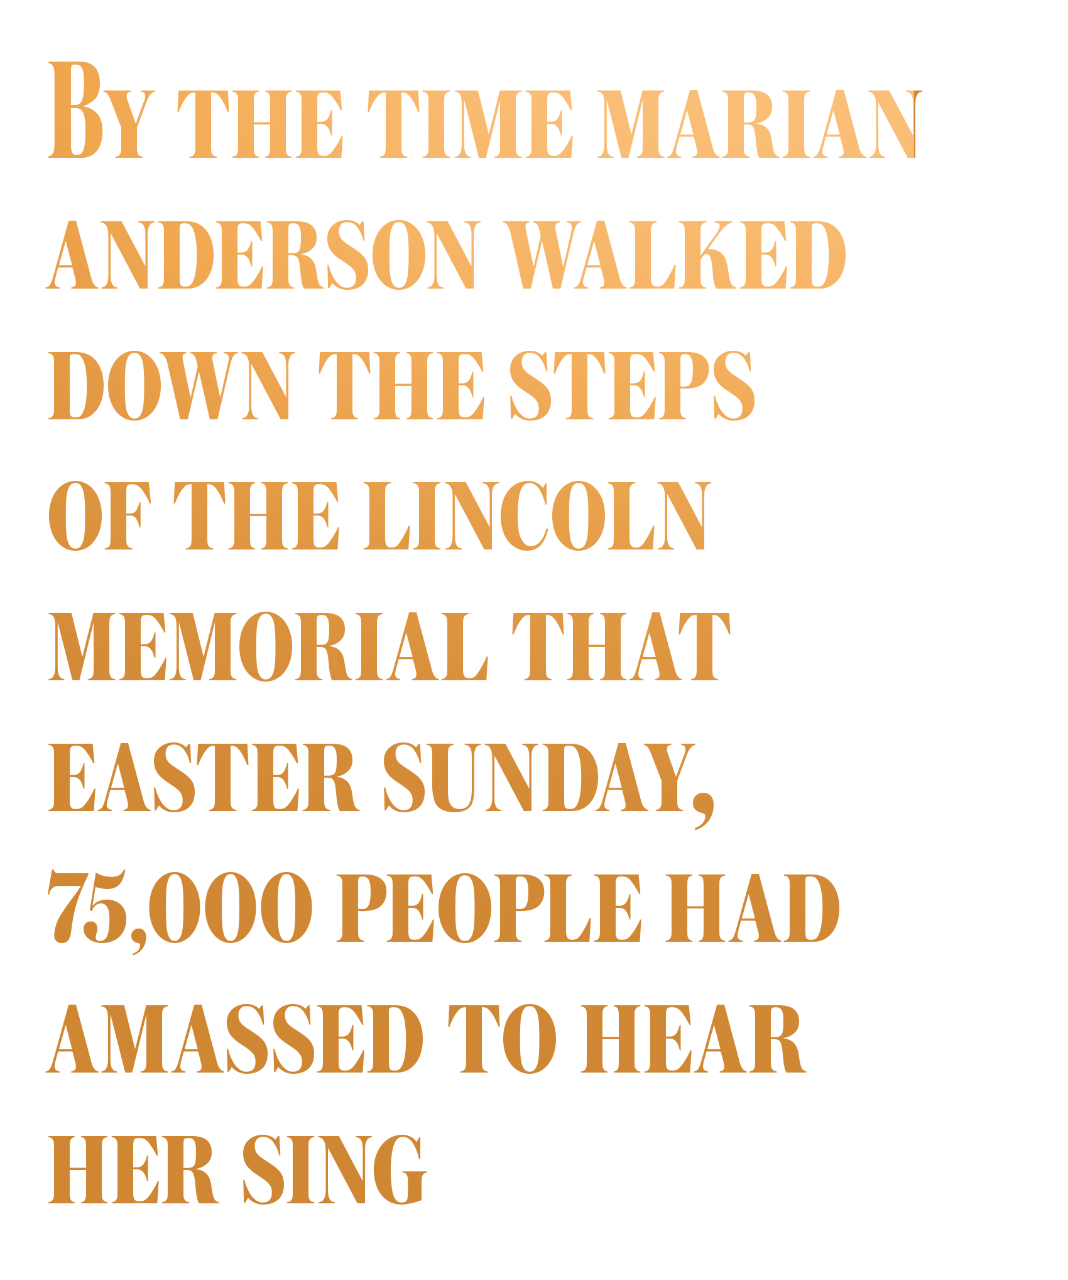 By the time Marian Anderson walked down the steps of the Lincoln Memorial that Easter Sunday, 75,000 people had amassed to hear her sing.